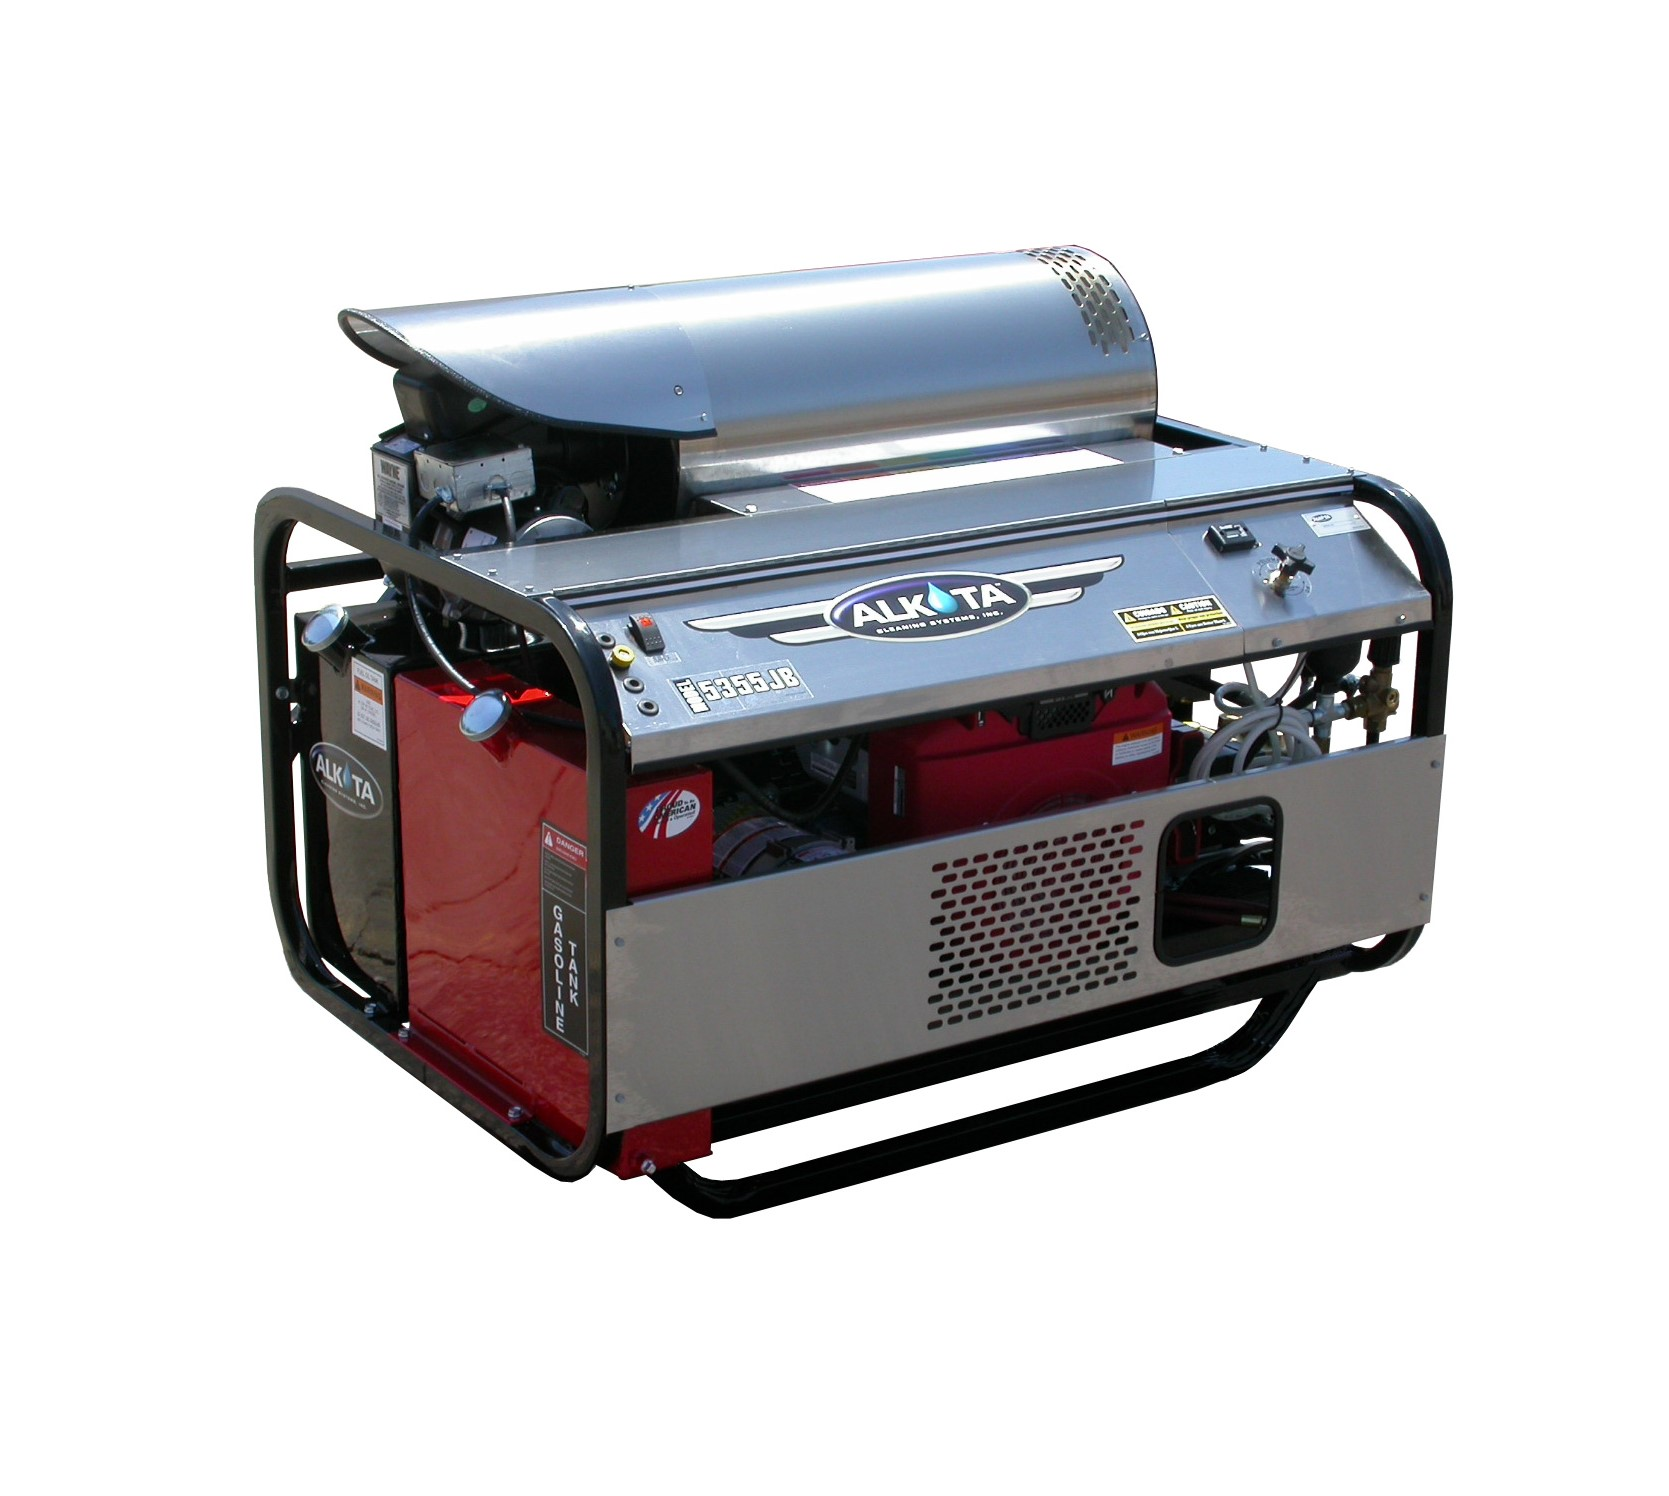 small resolution of pressure washer hot water gas engine 5355jb alkota alkota cleaningpressure washer hot water gas engine 5355jb